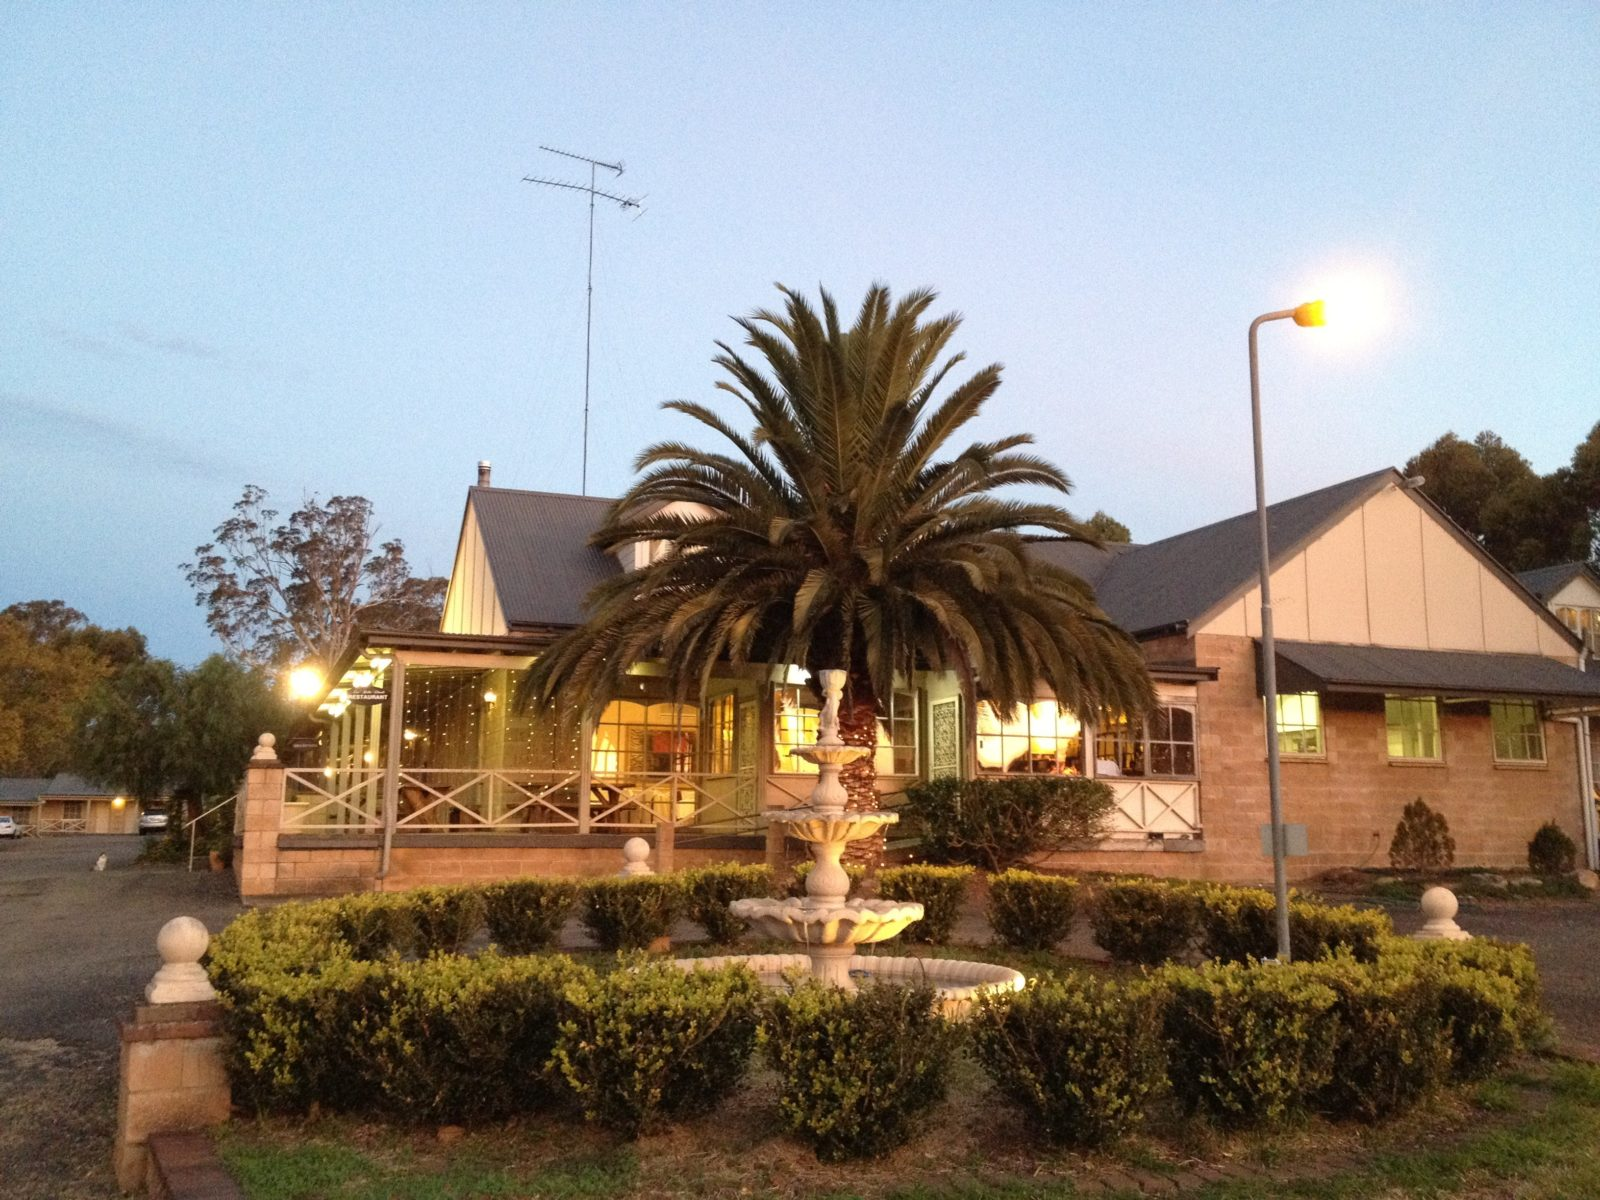 Federation style building on five acres of gardens